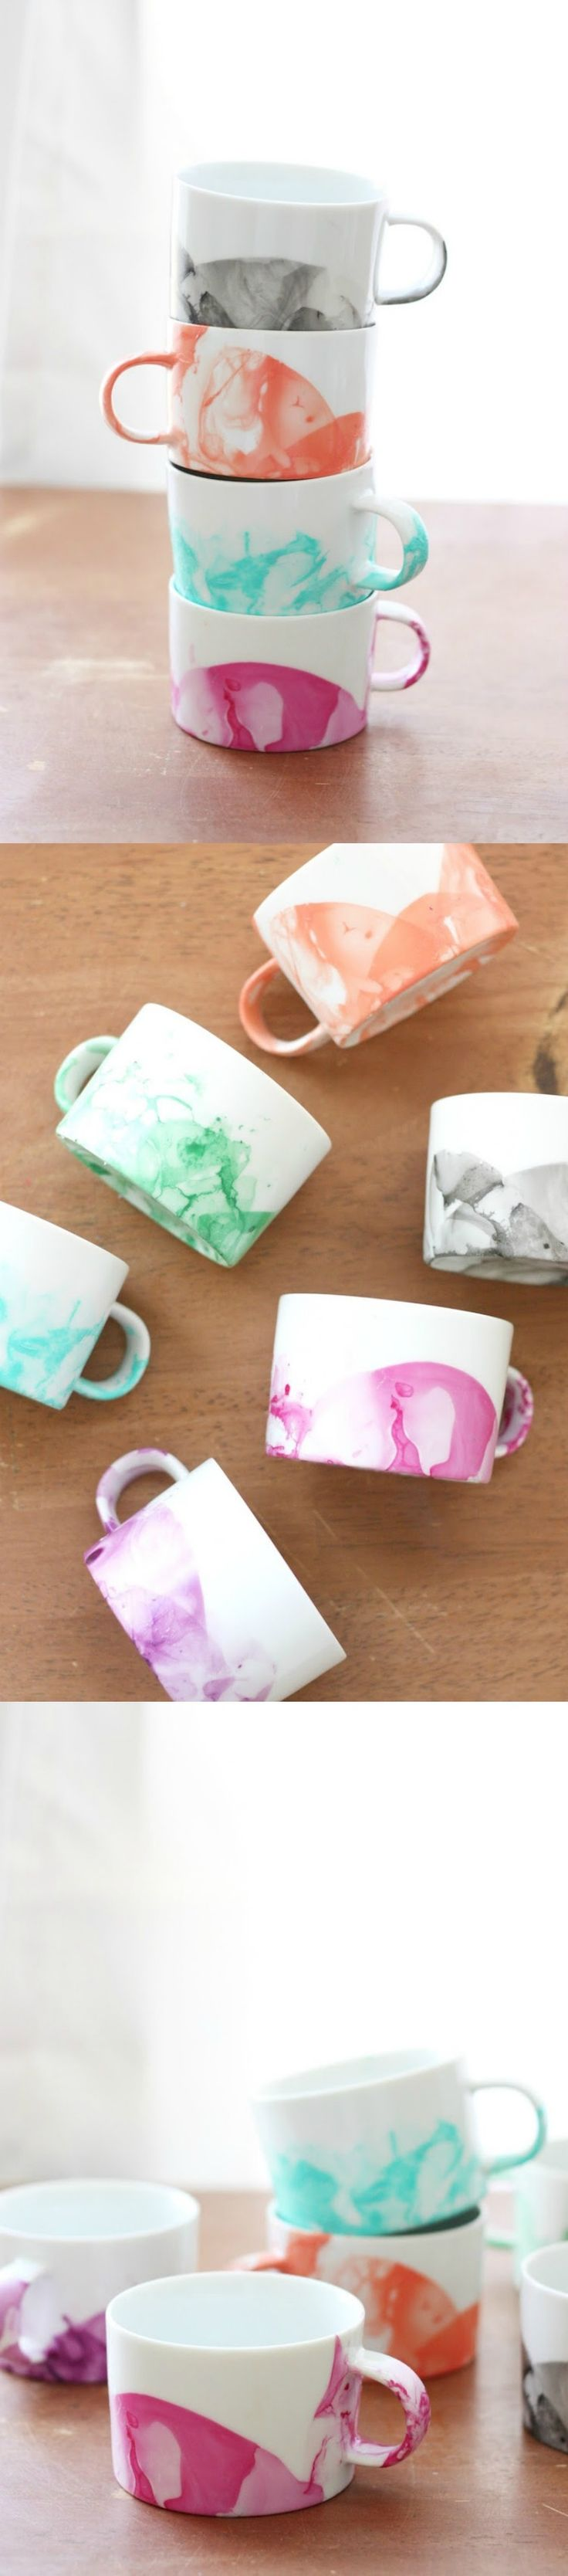 Diy Colorful mugs